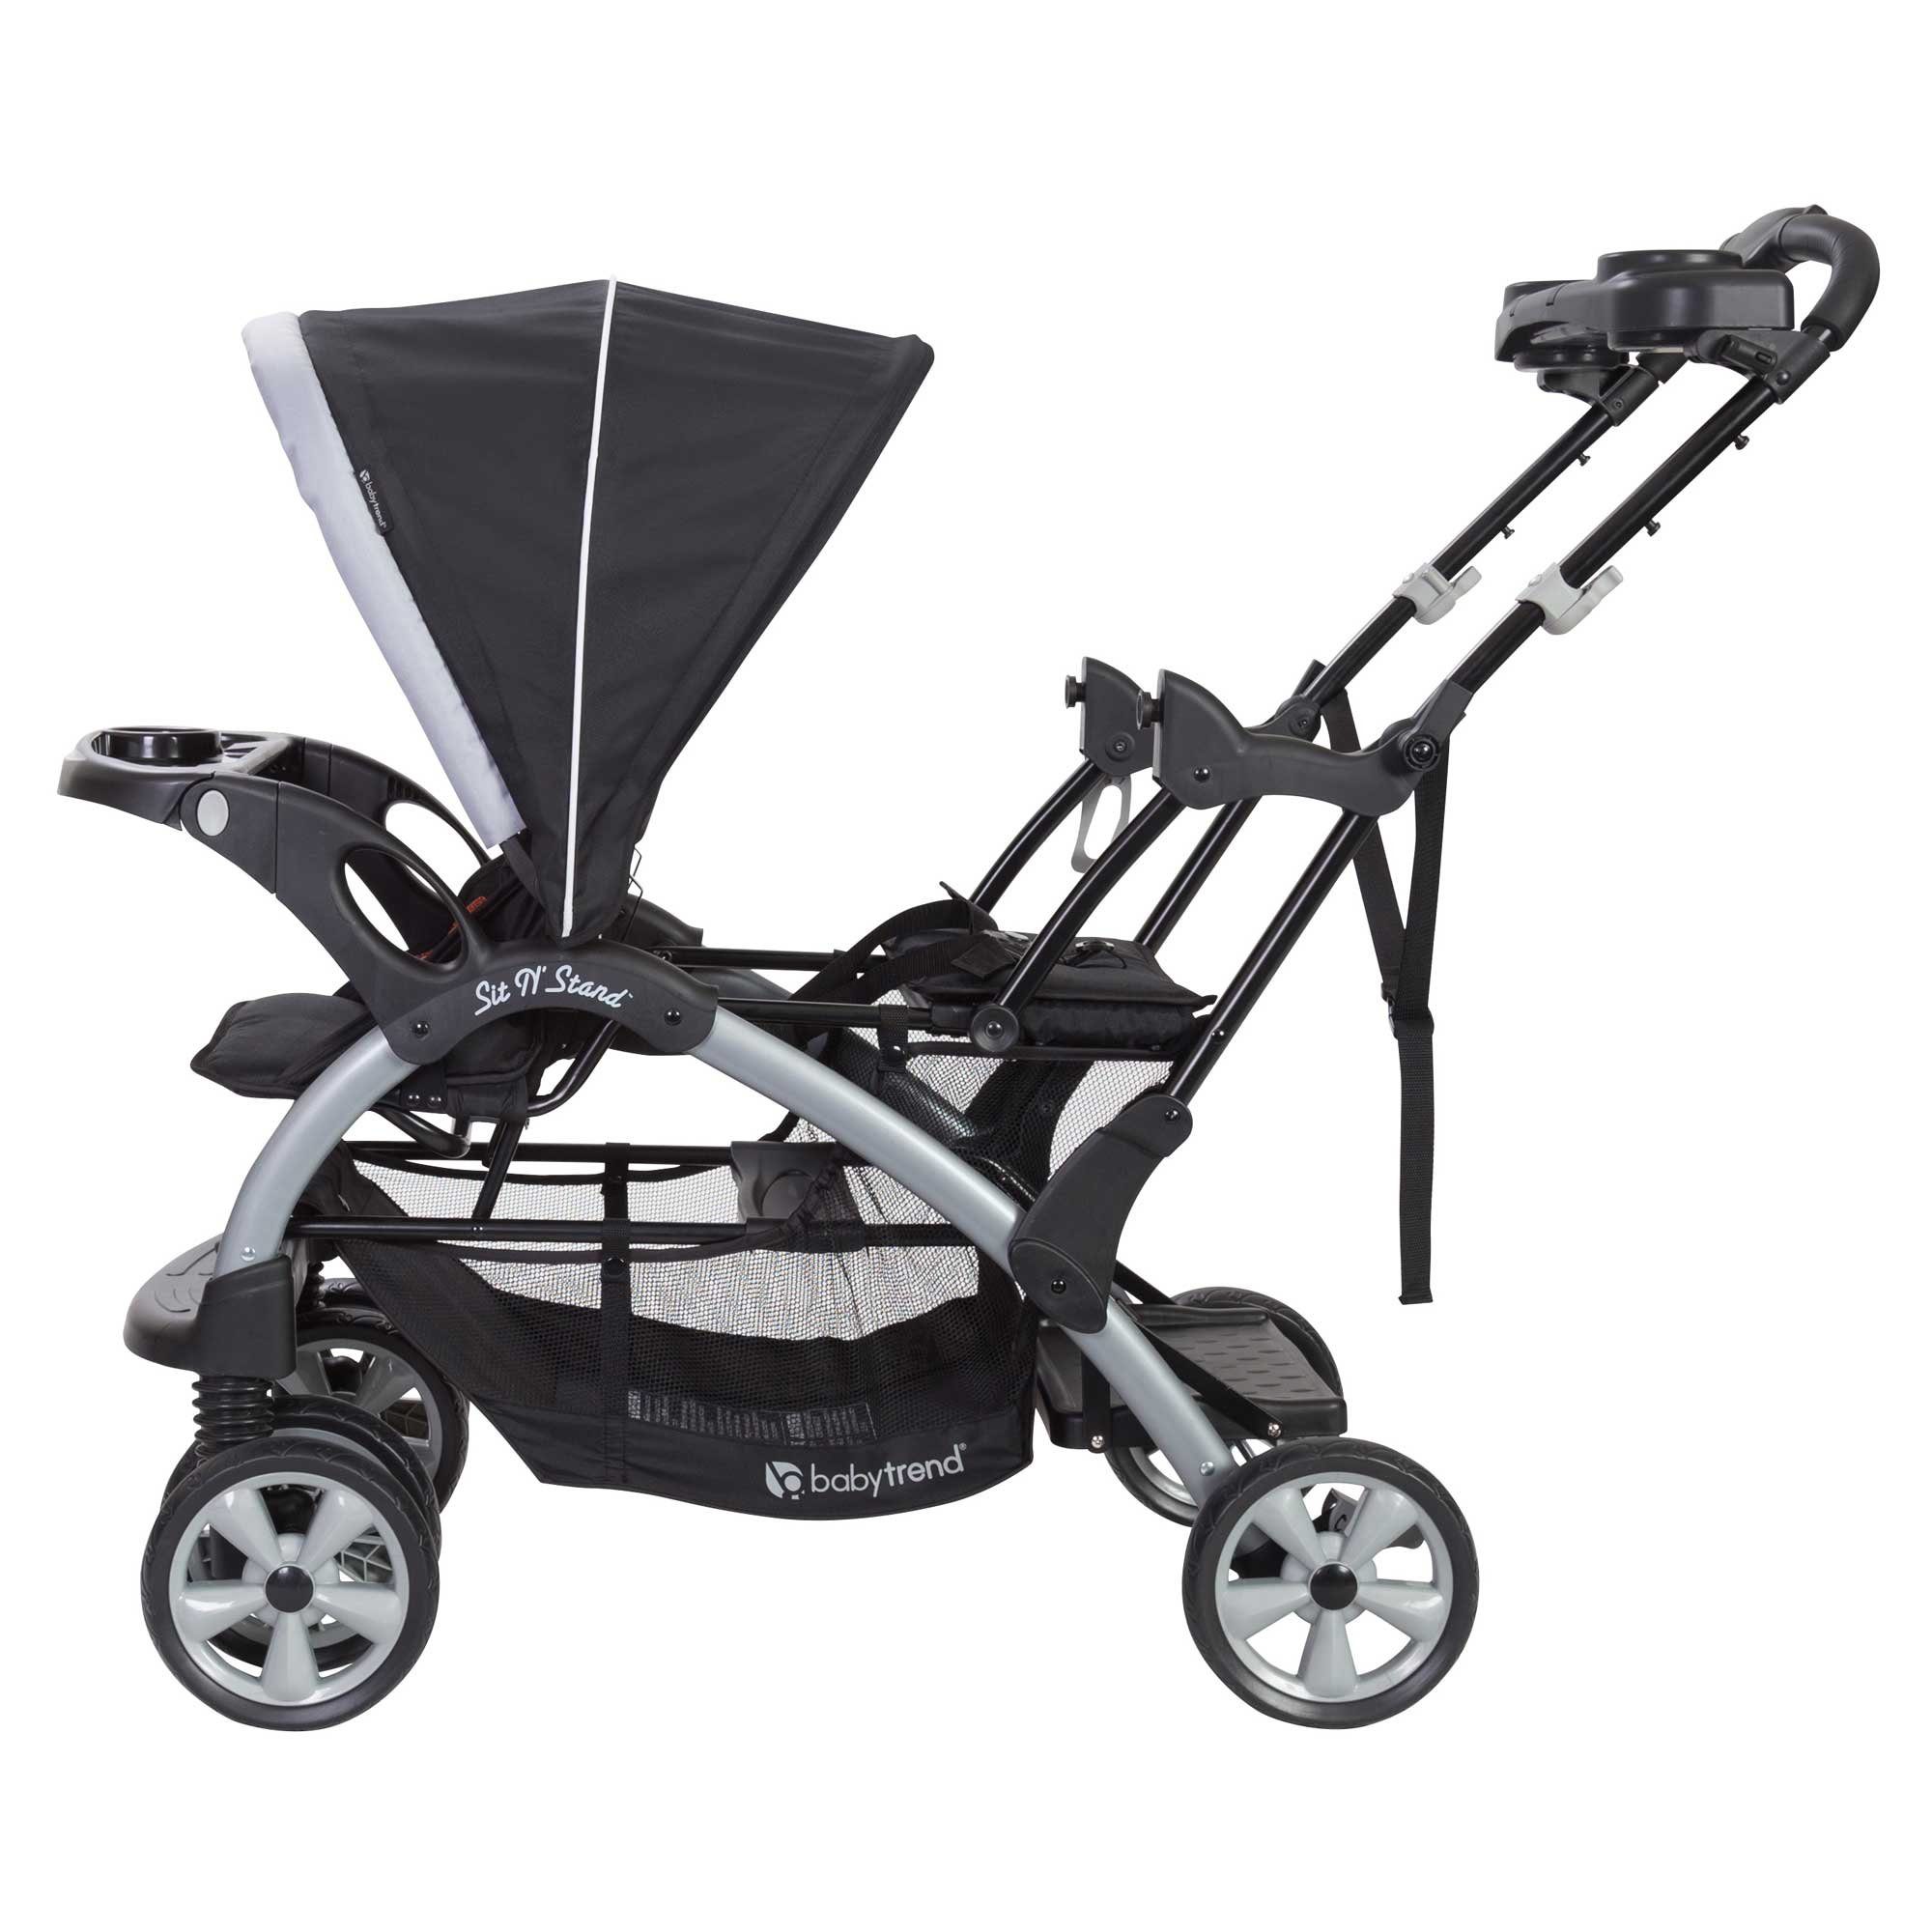 Baby Trend Sit N Stand Tandem Stroller + Infant Car Seat Travel System, Stormy by Baby Trend (Image #6)